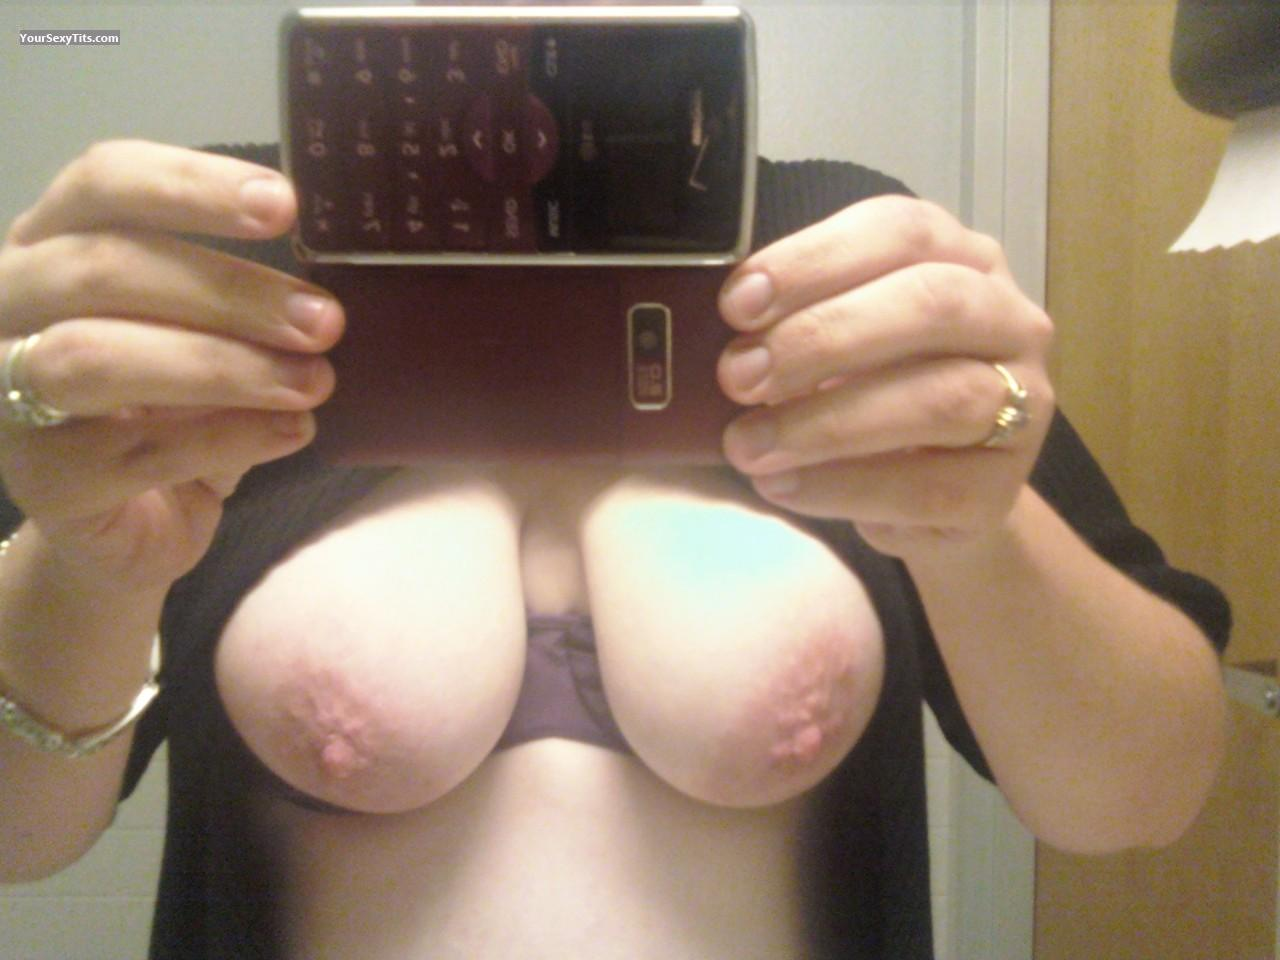 My Big Tits Selfie by D.J.